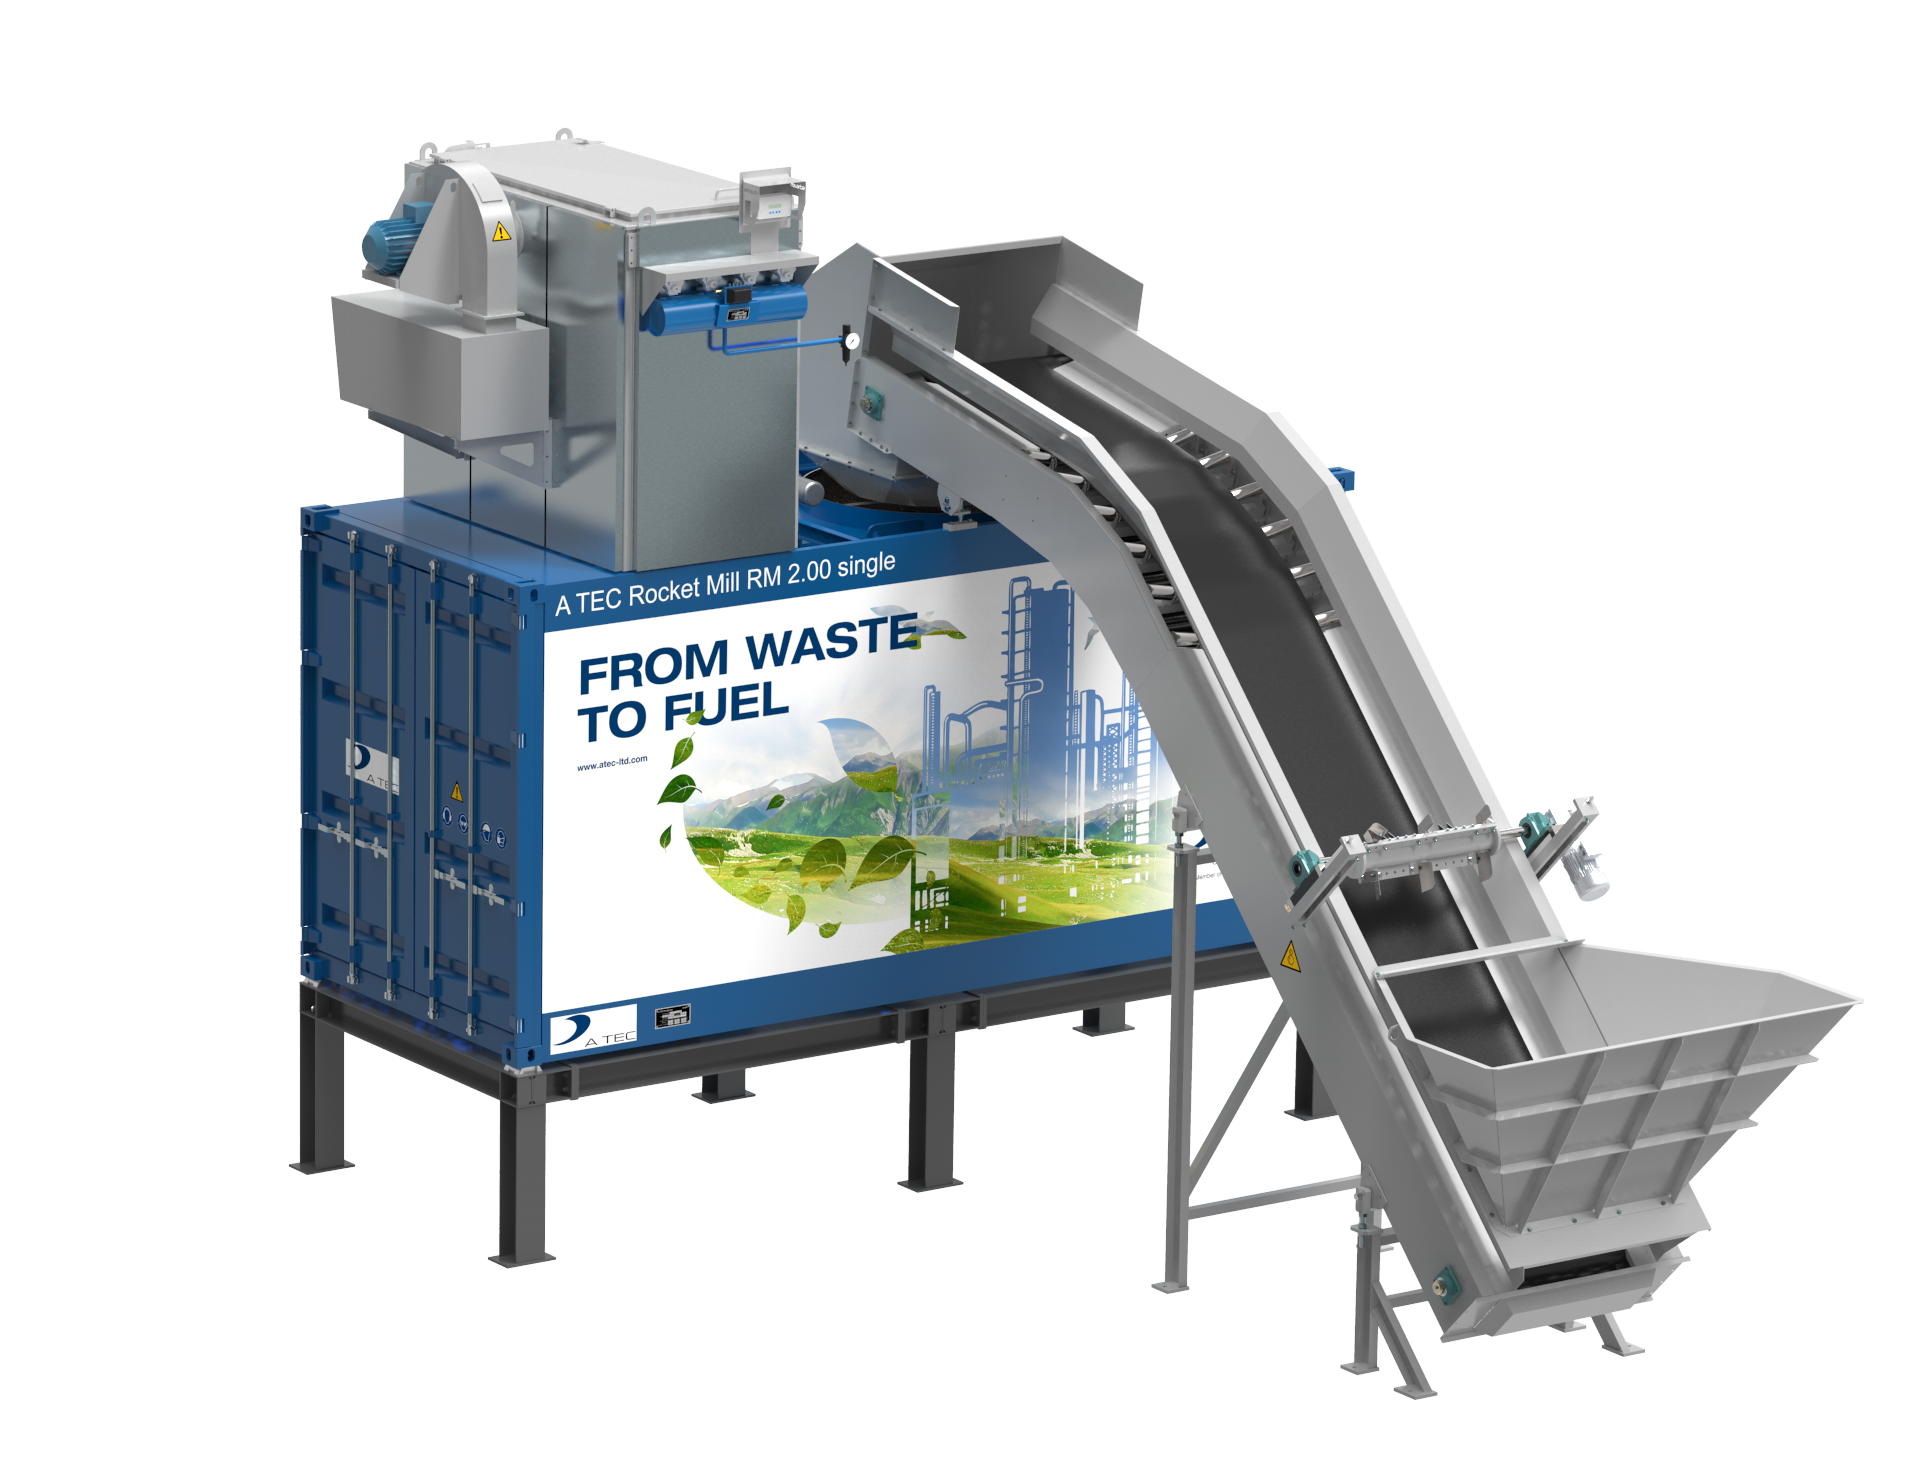 Cement Grinding Plant : New mobile version of a tec s rocket mill mining